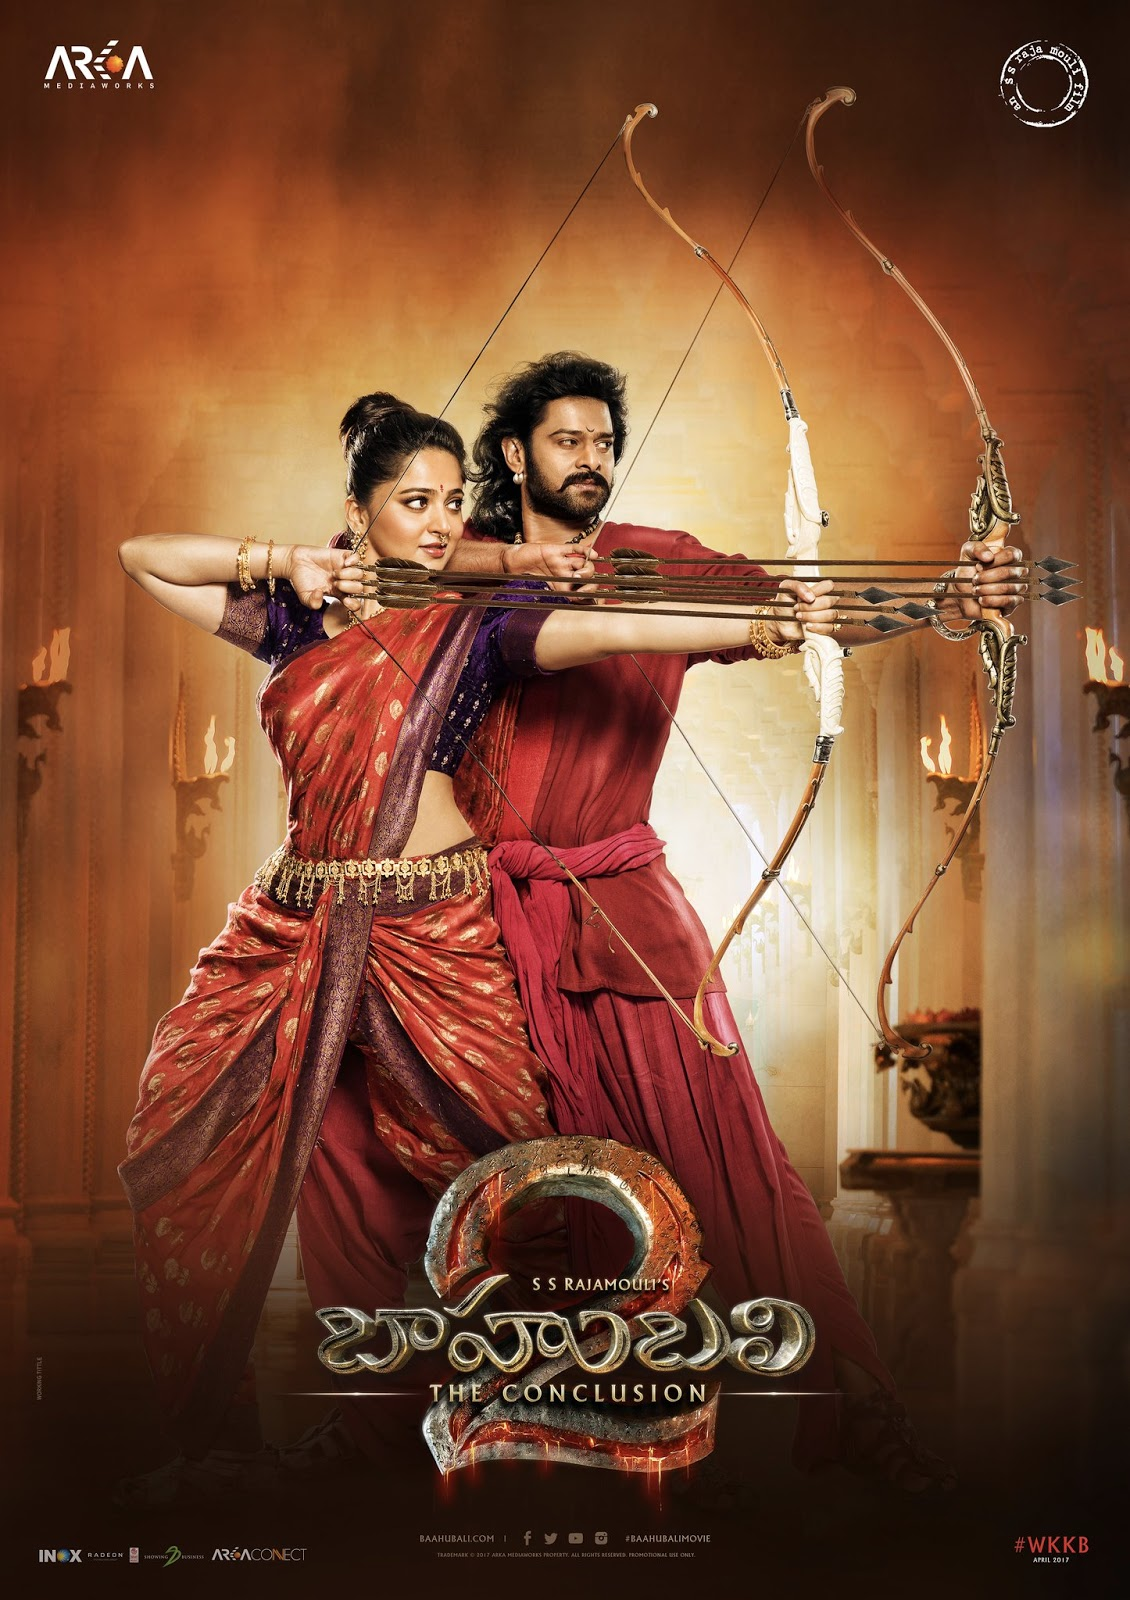 Hd wallpaper bahubali 2 - Prabhas_baahubali_new_poster Baahubali 2b2 2bmovie 2bfirstlook 2bposters2